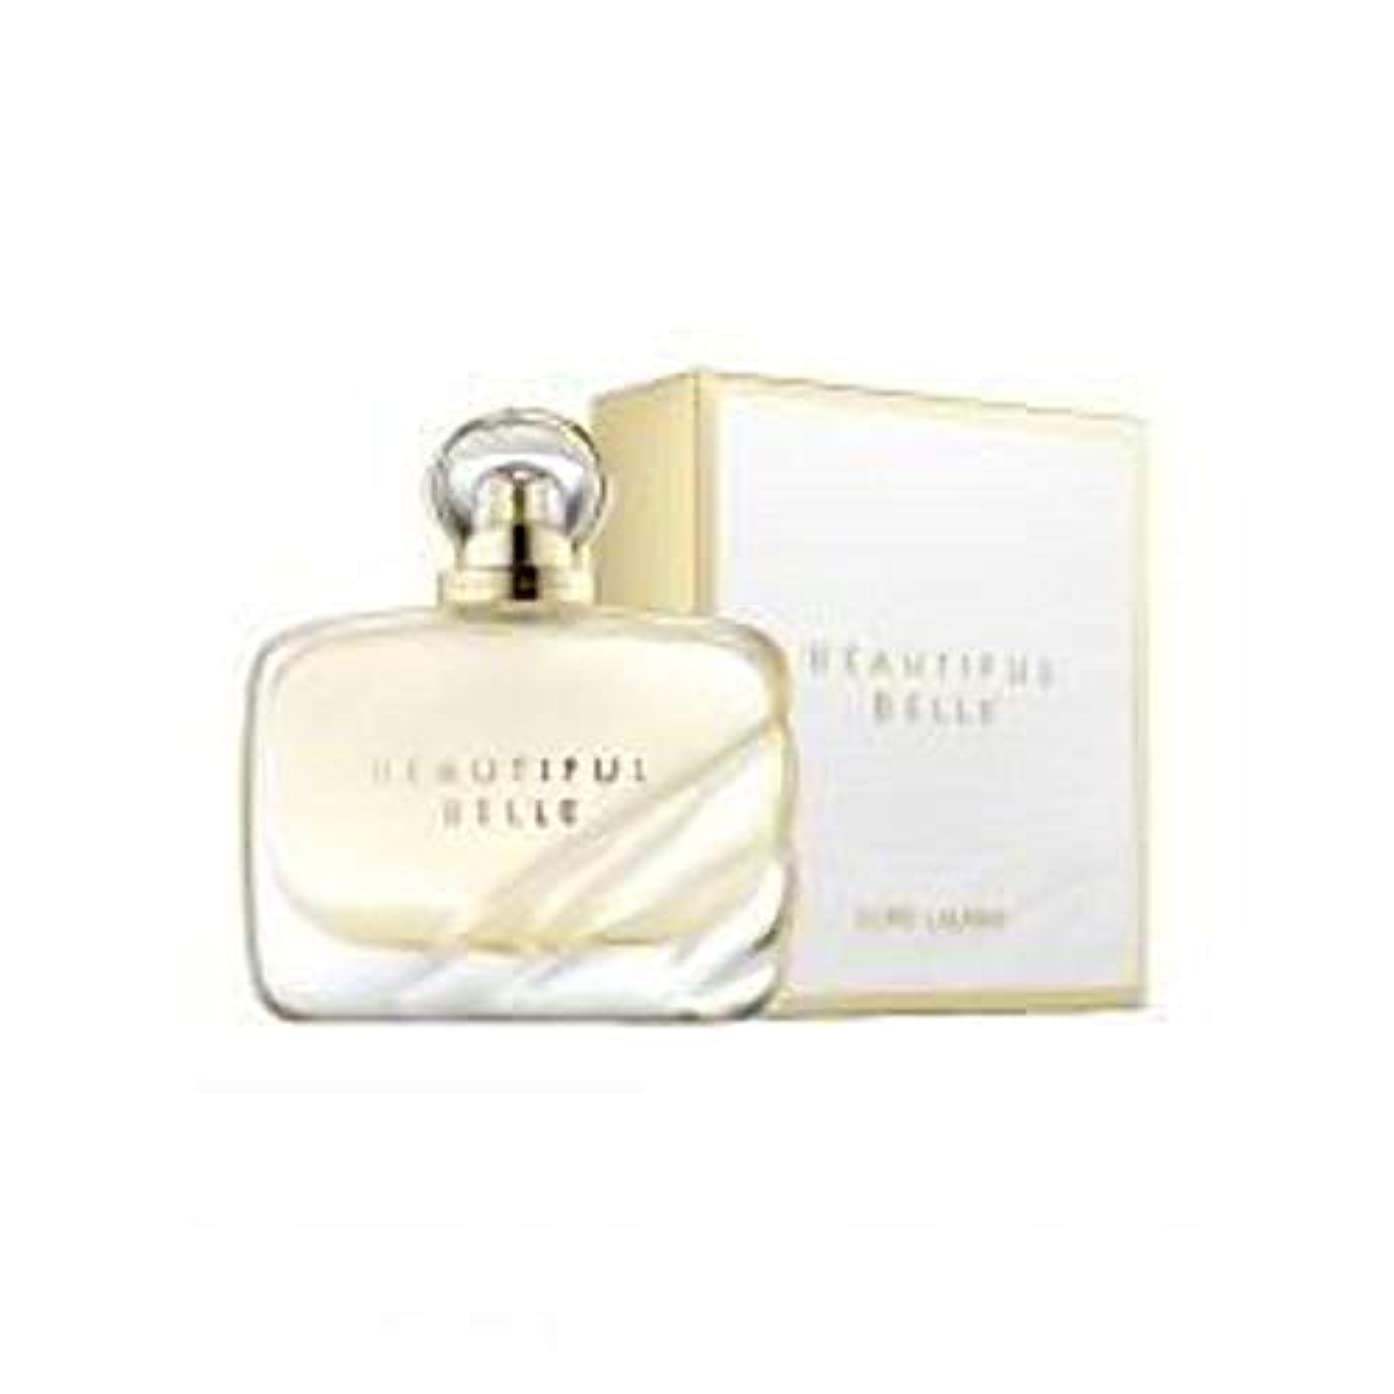 メイトタックル車両Estee Lauder Beautiful Belle 50 ML Eau de Parfum